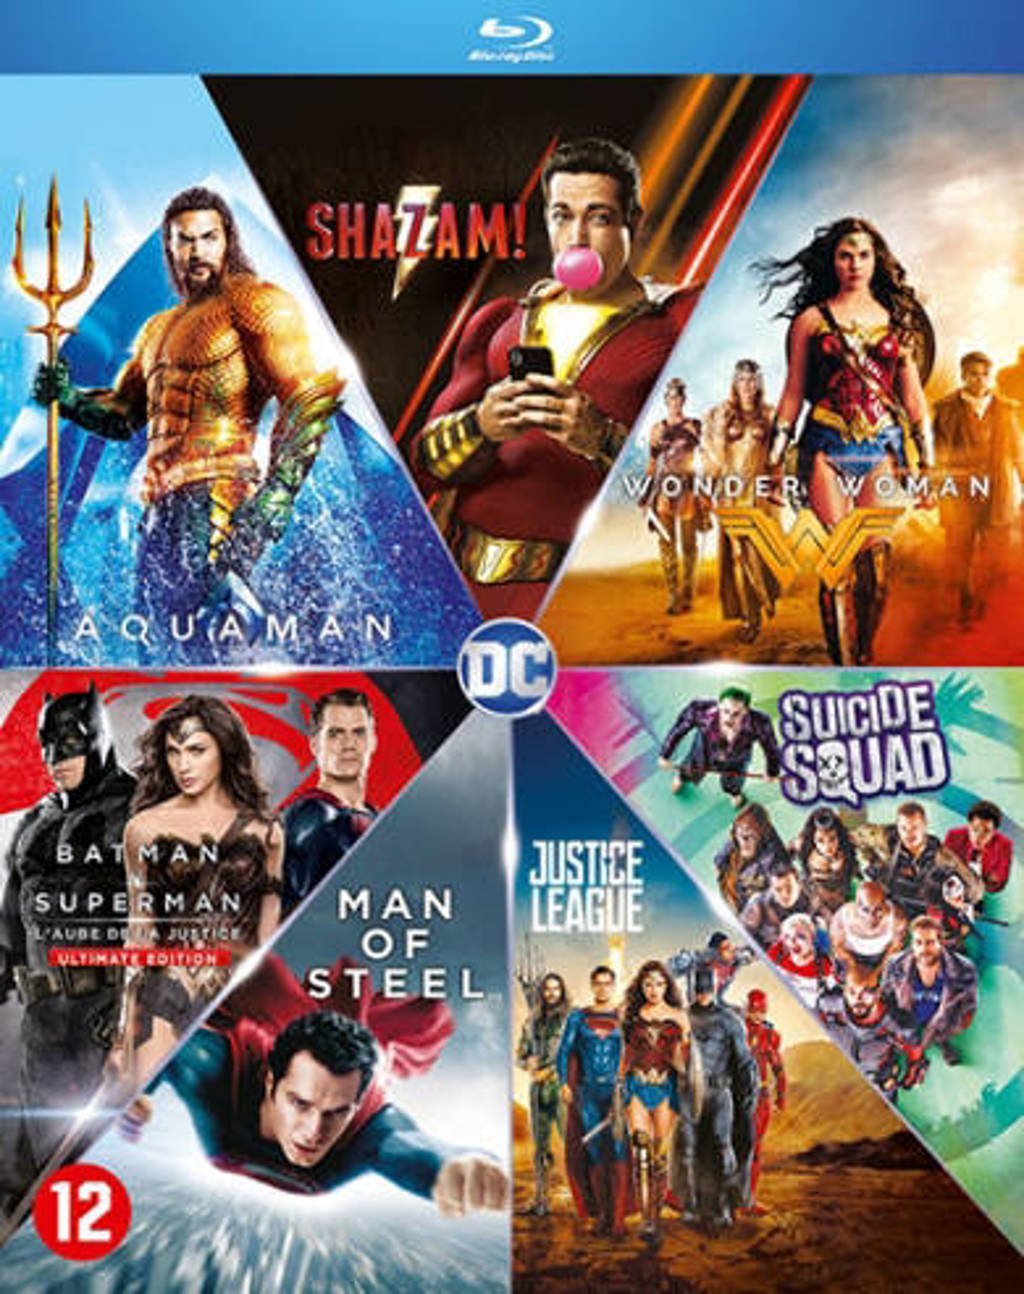 DC comics movie collection (7 films) (Blu-ray)